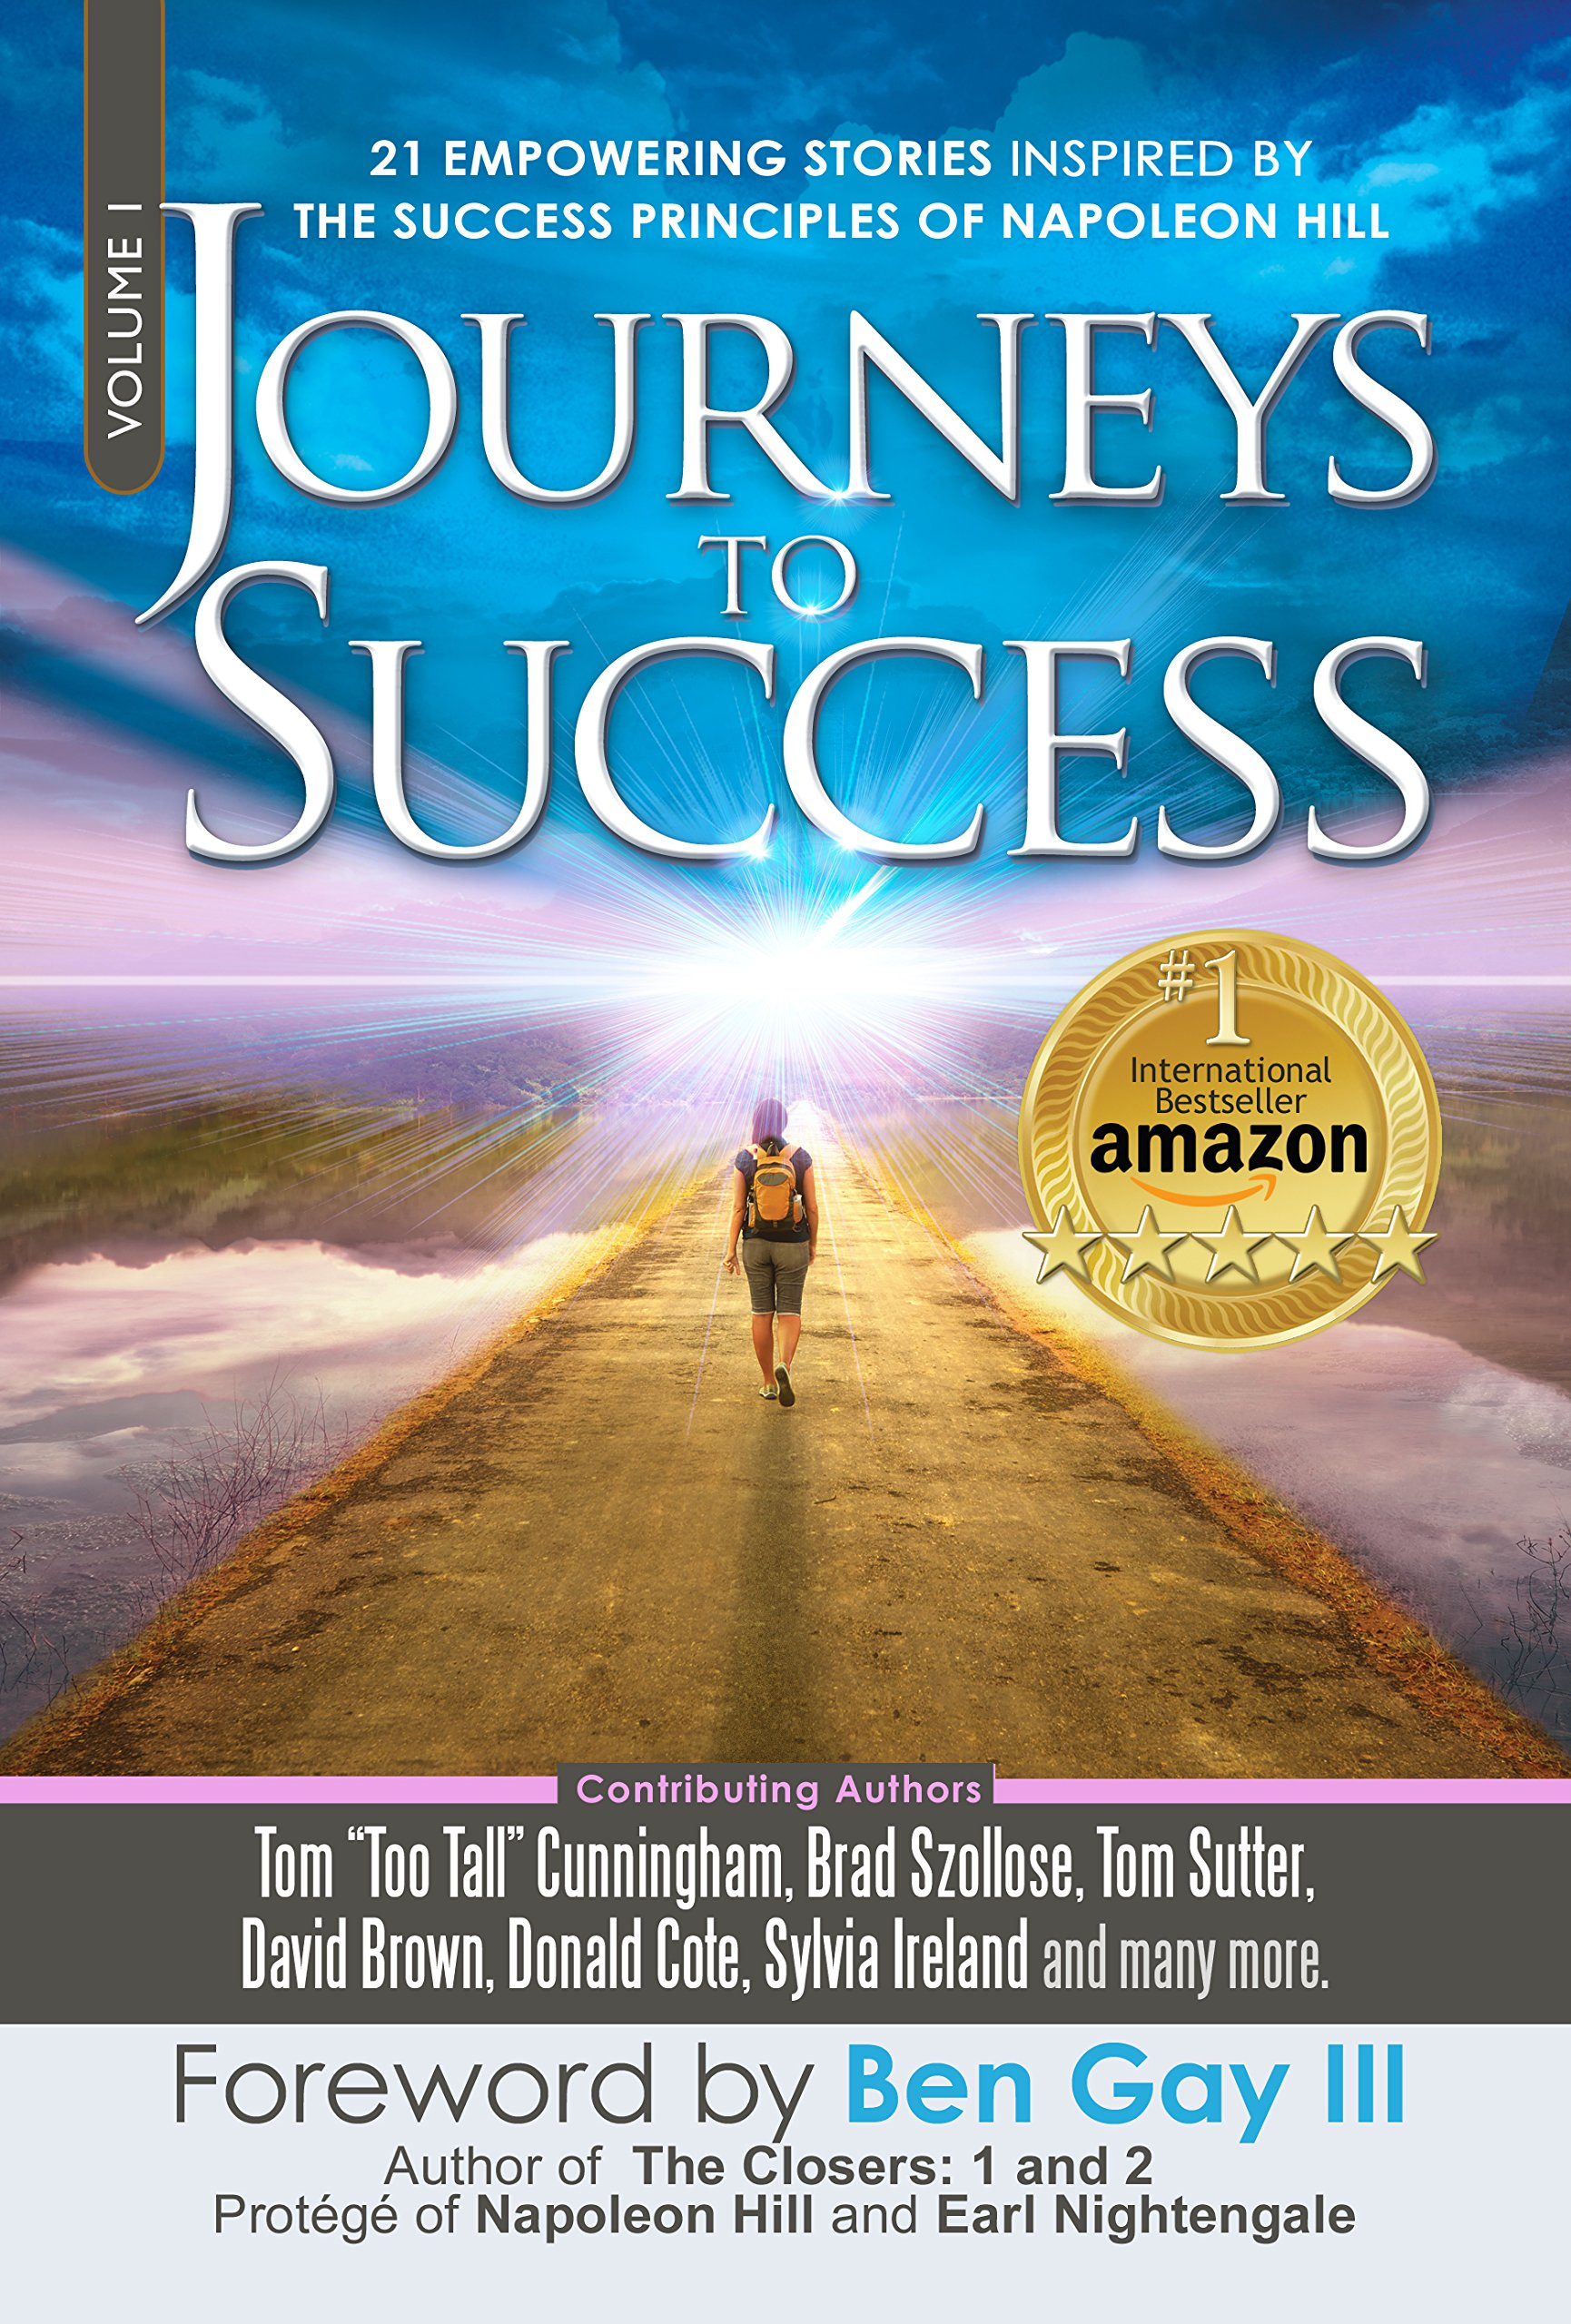 Journeys To Success: 21 Empowering Stories Inspired By The Success Principles of Napoleon Hill